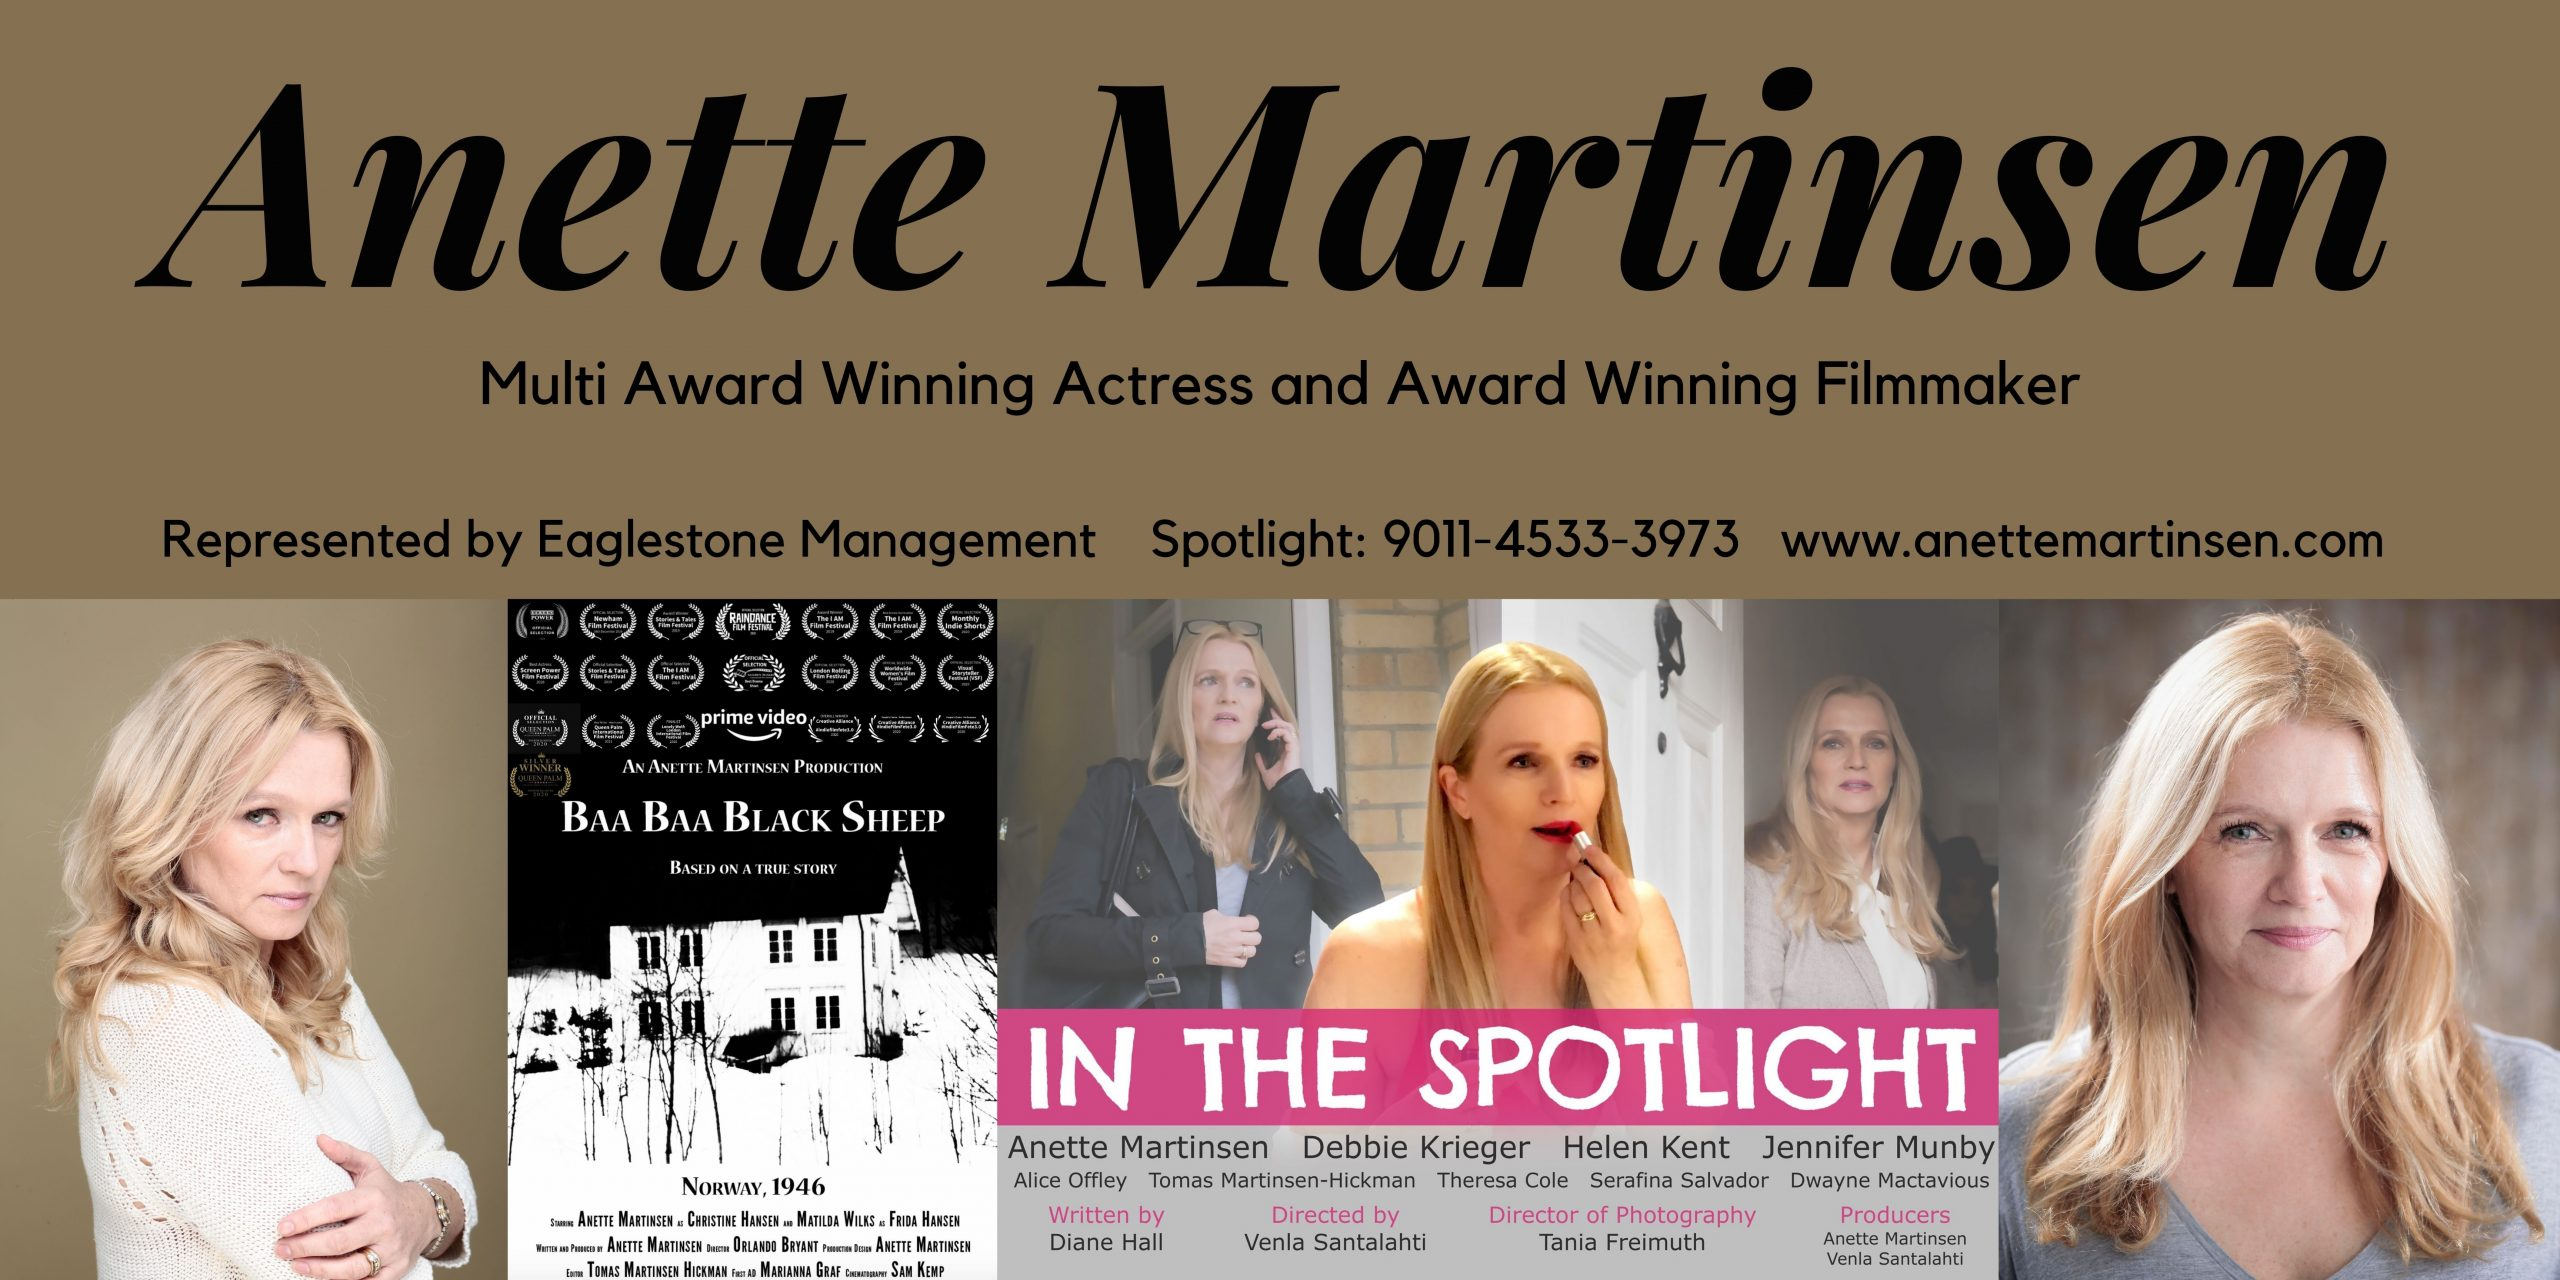 Multi Award Winning Actress and Filmmaker